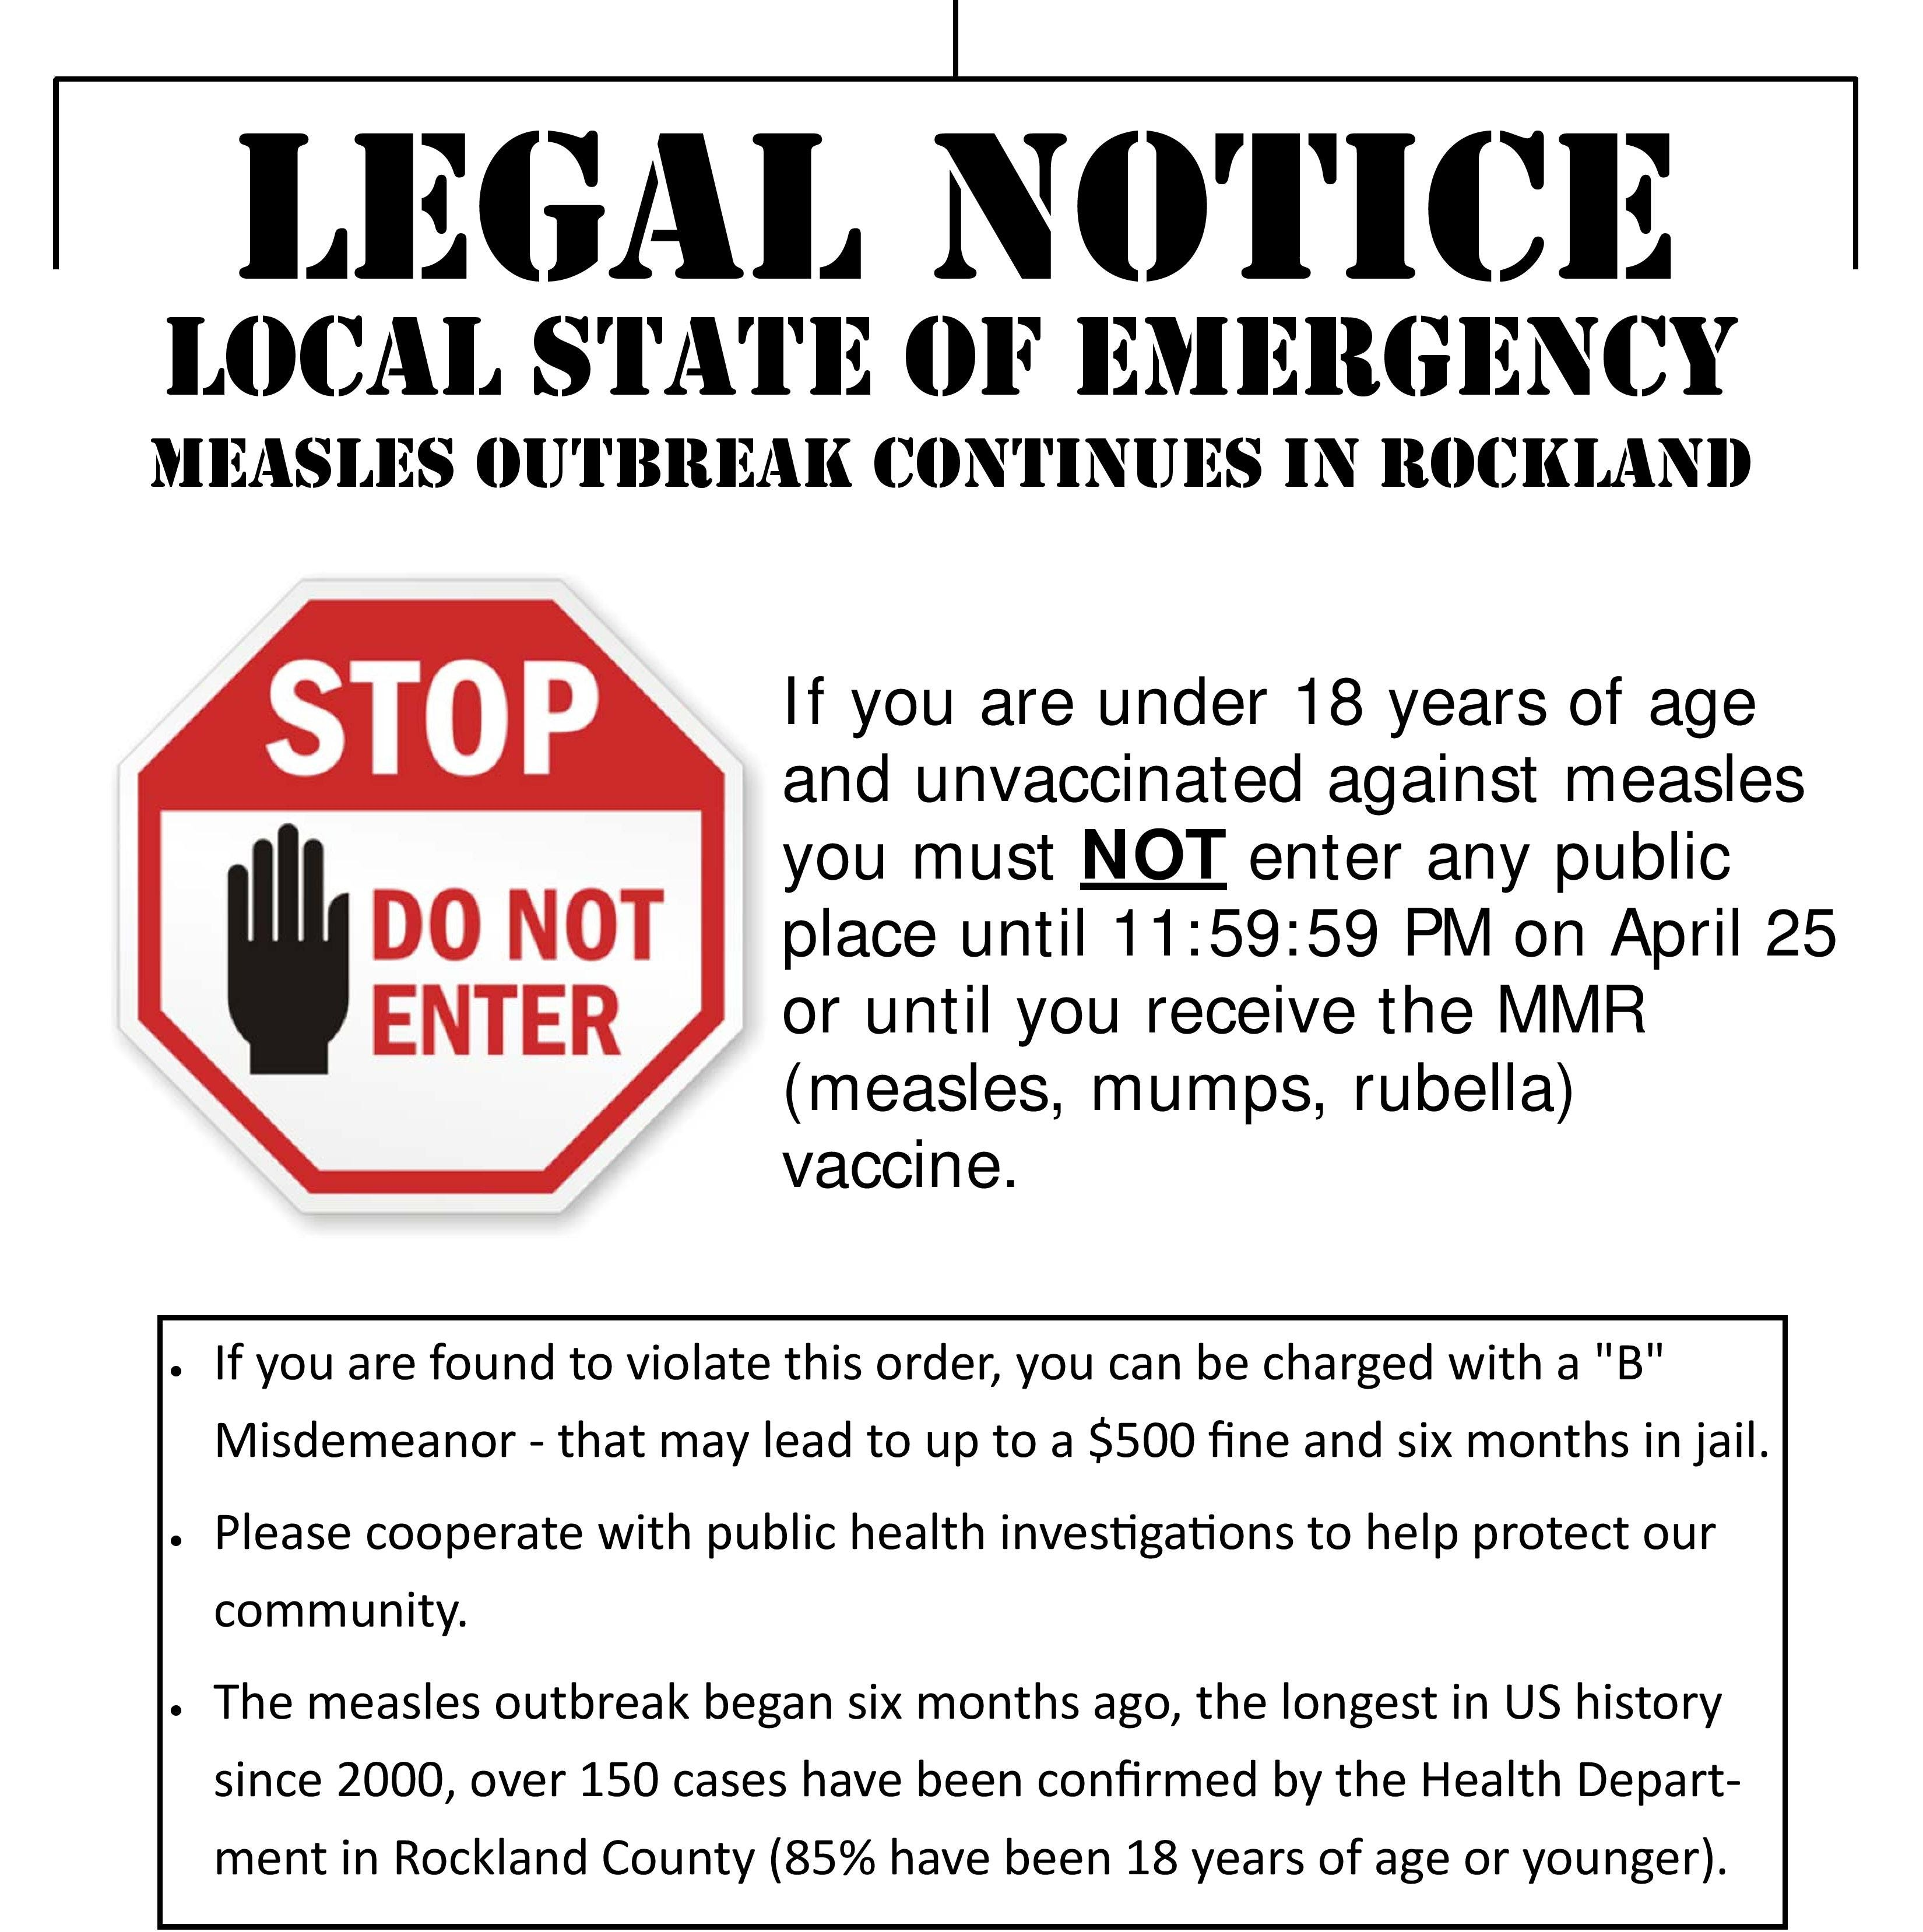 Rockland measles emergency: 5 things to know